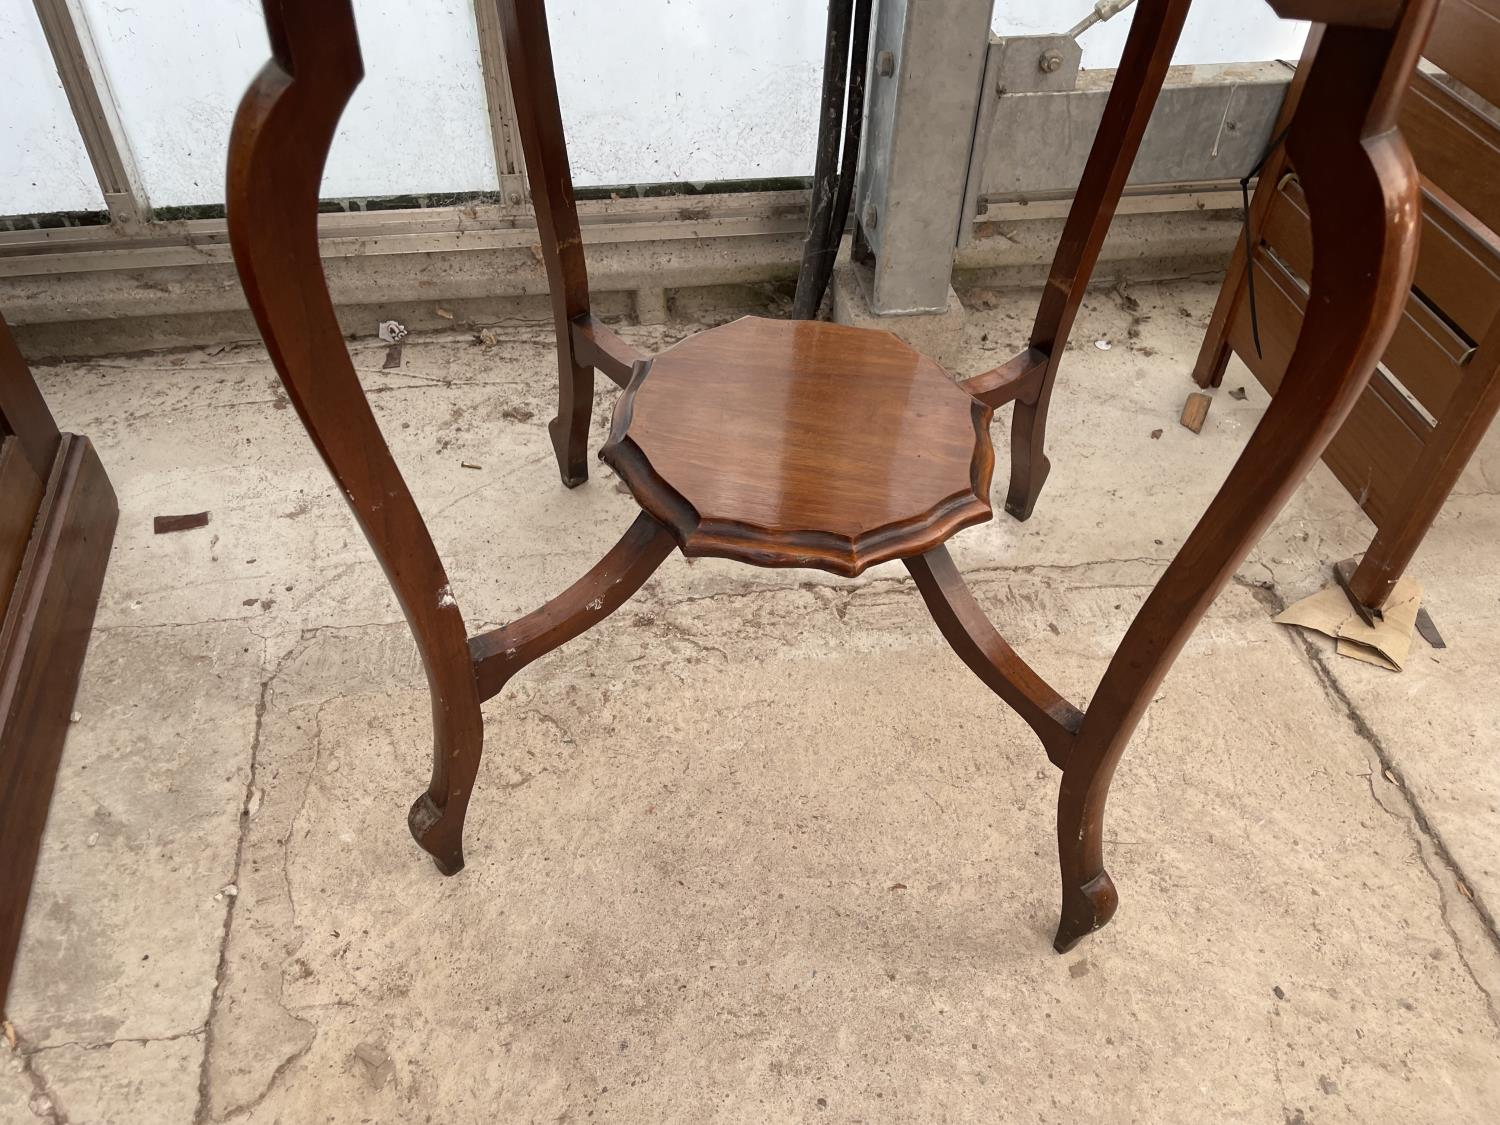 """AN EDWARDIAN MAHOGANY TWO TIER CENTRE TABLE, 26"""" DIAMETER - Image 3 of 3"""